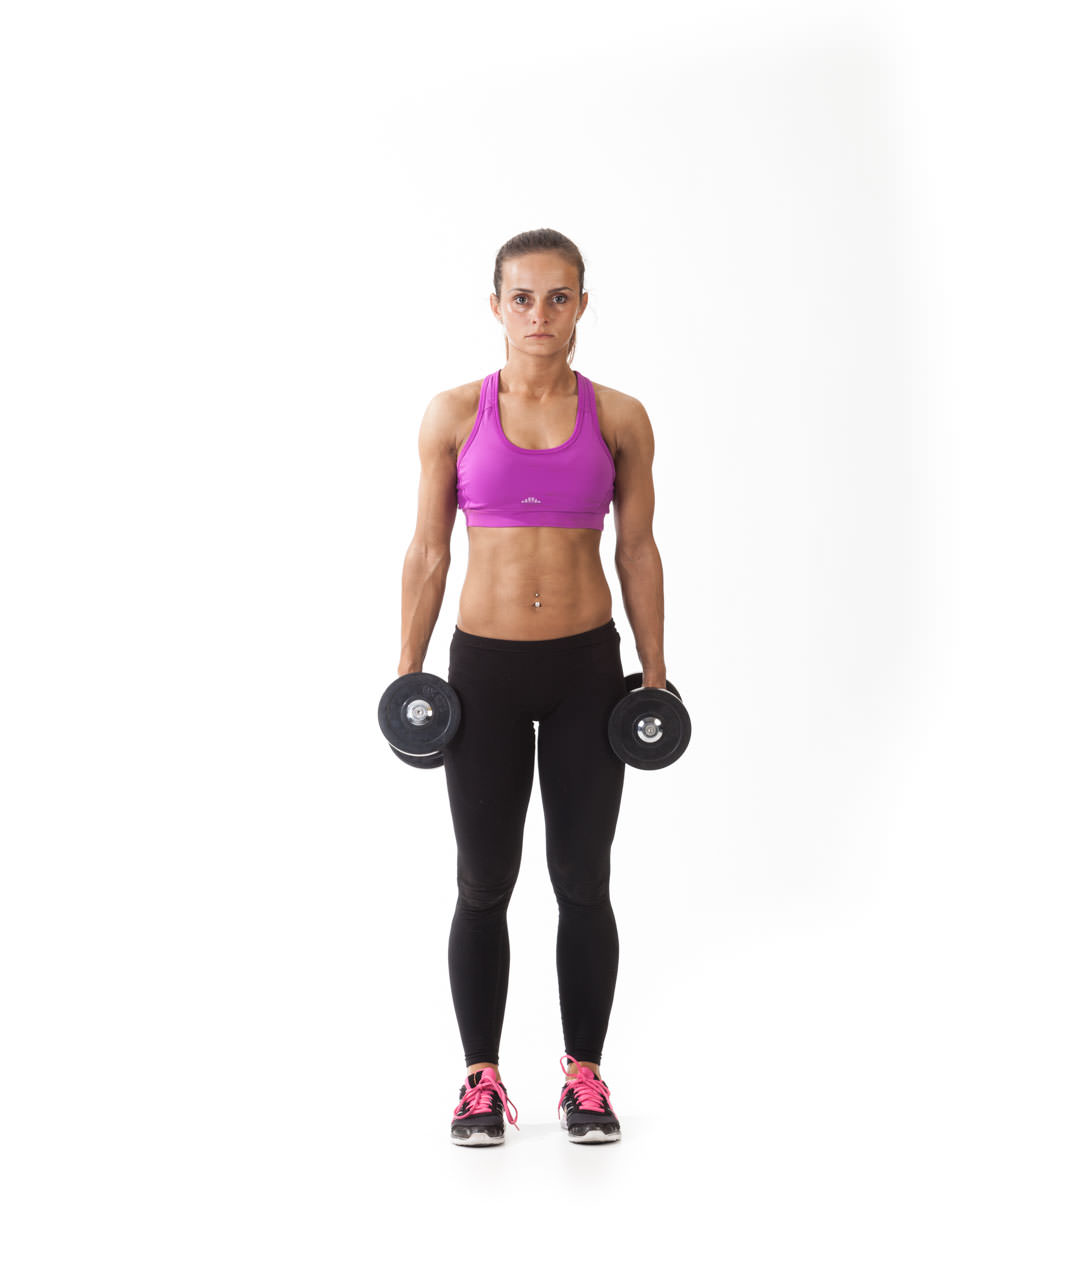 Dumbbell Lunge with Lateral Raise frame #3